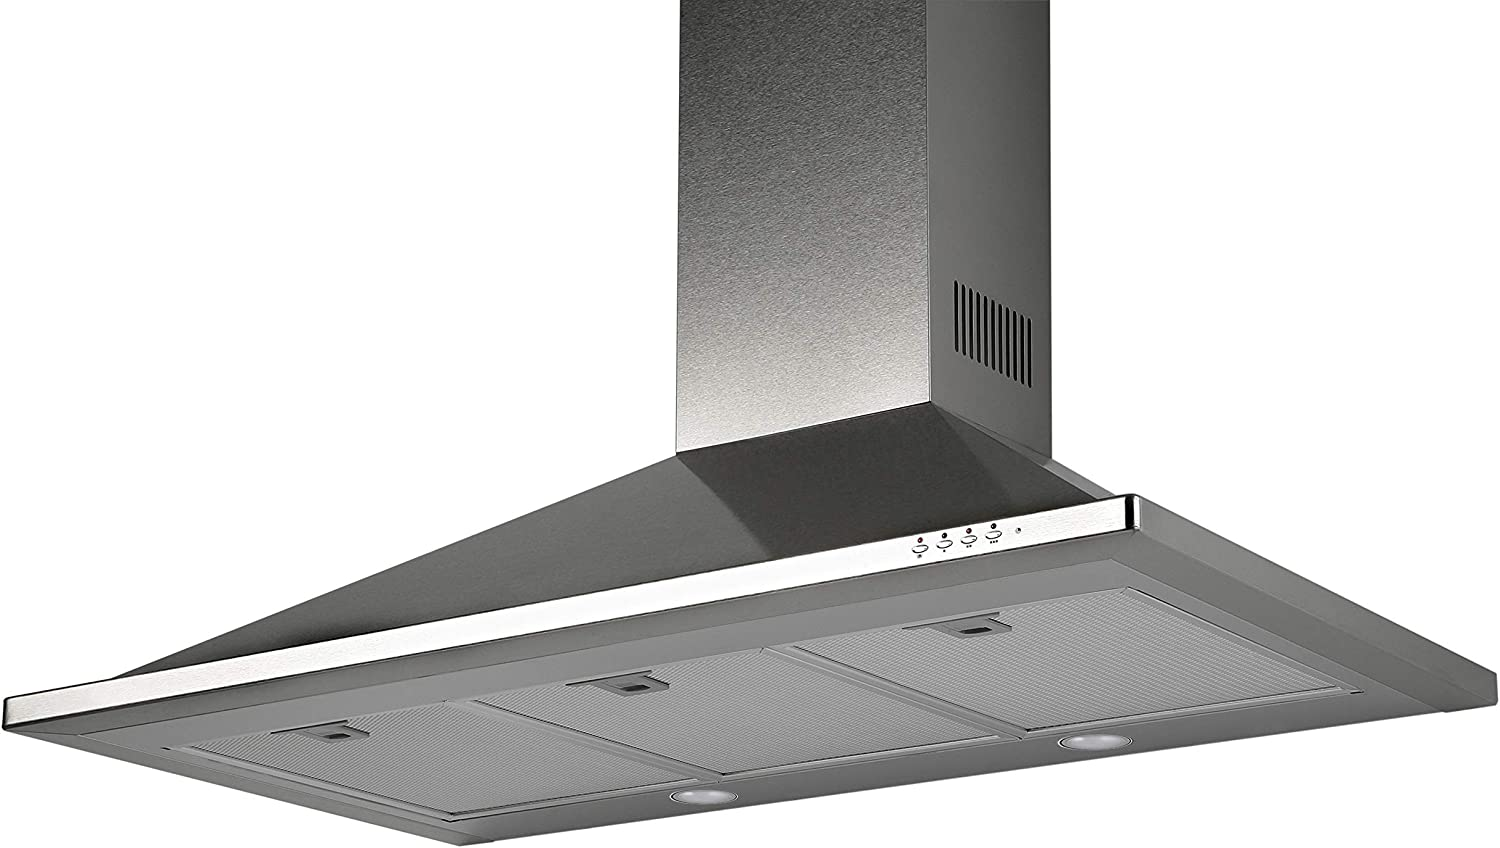 "Equator 36"" Made in Europe Wall Mount Range hood, Real Stainless, 600 CFM, LED lights, 3 Speed, Timer with Auto Speed Reduction"